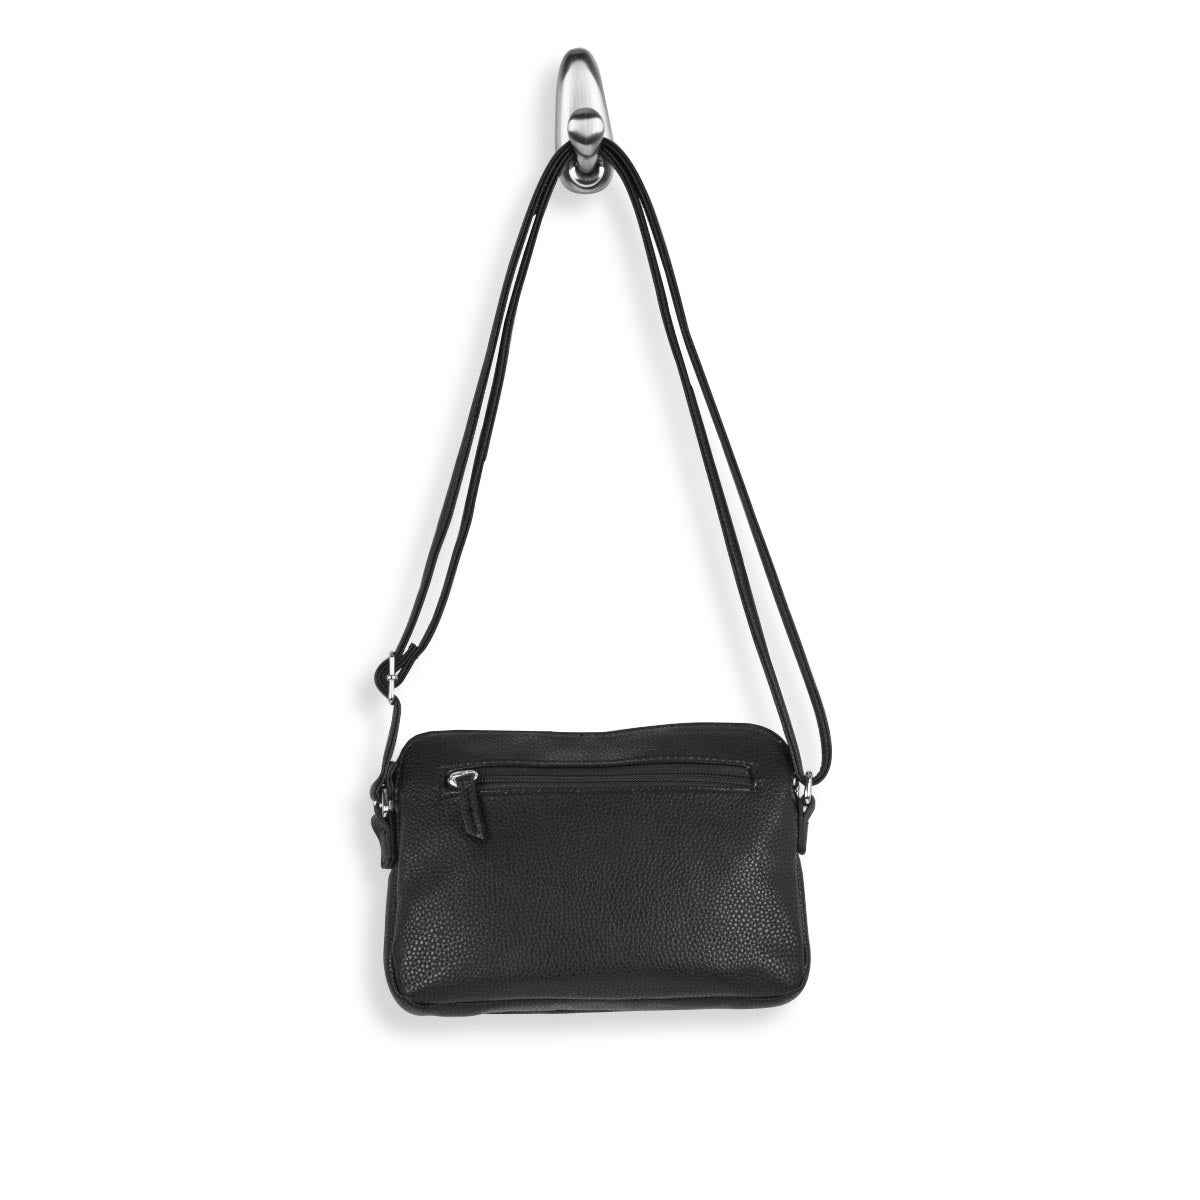 Lds black east/west small crossbody bag